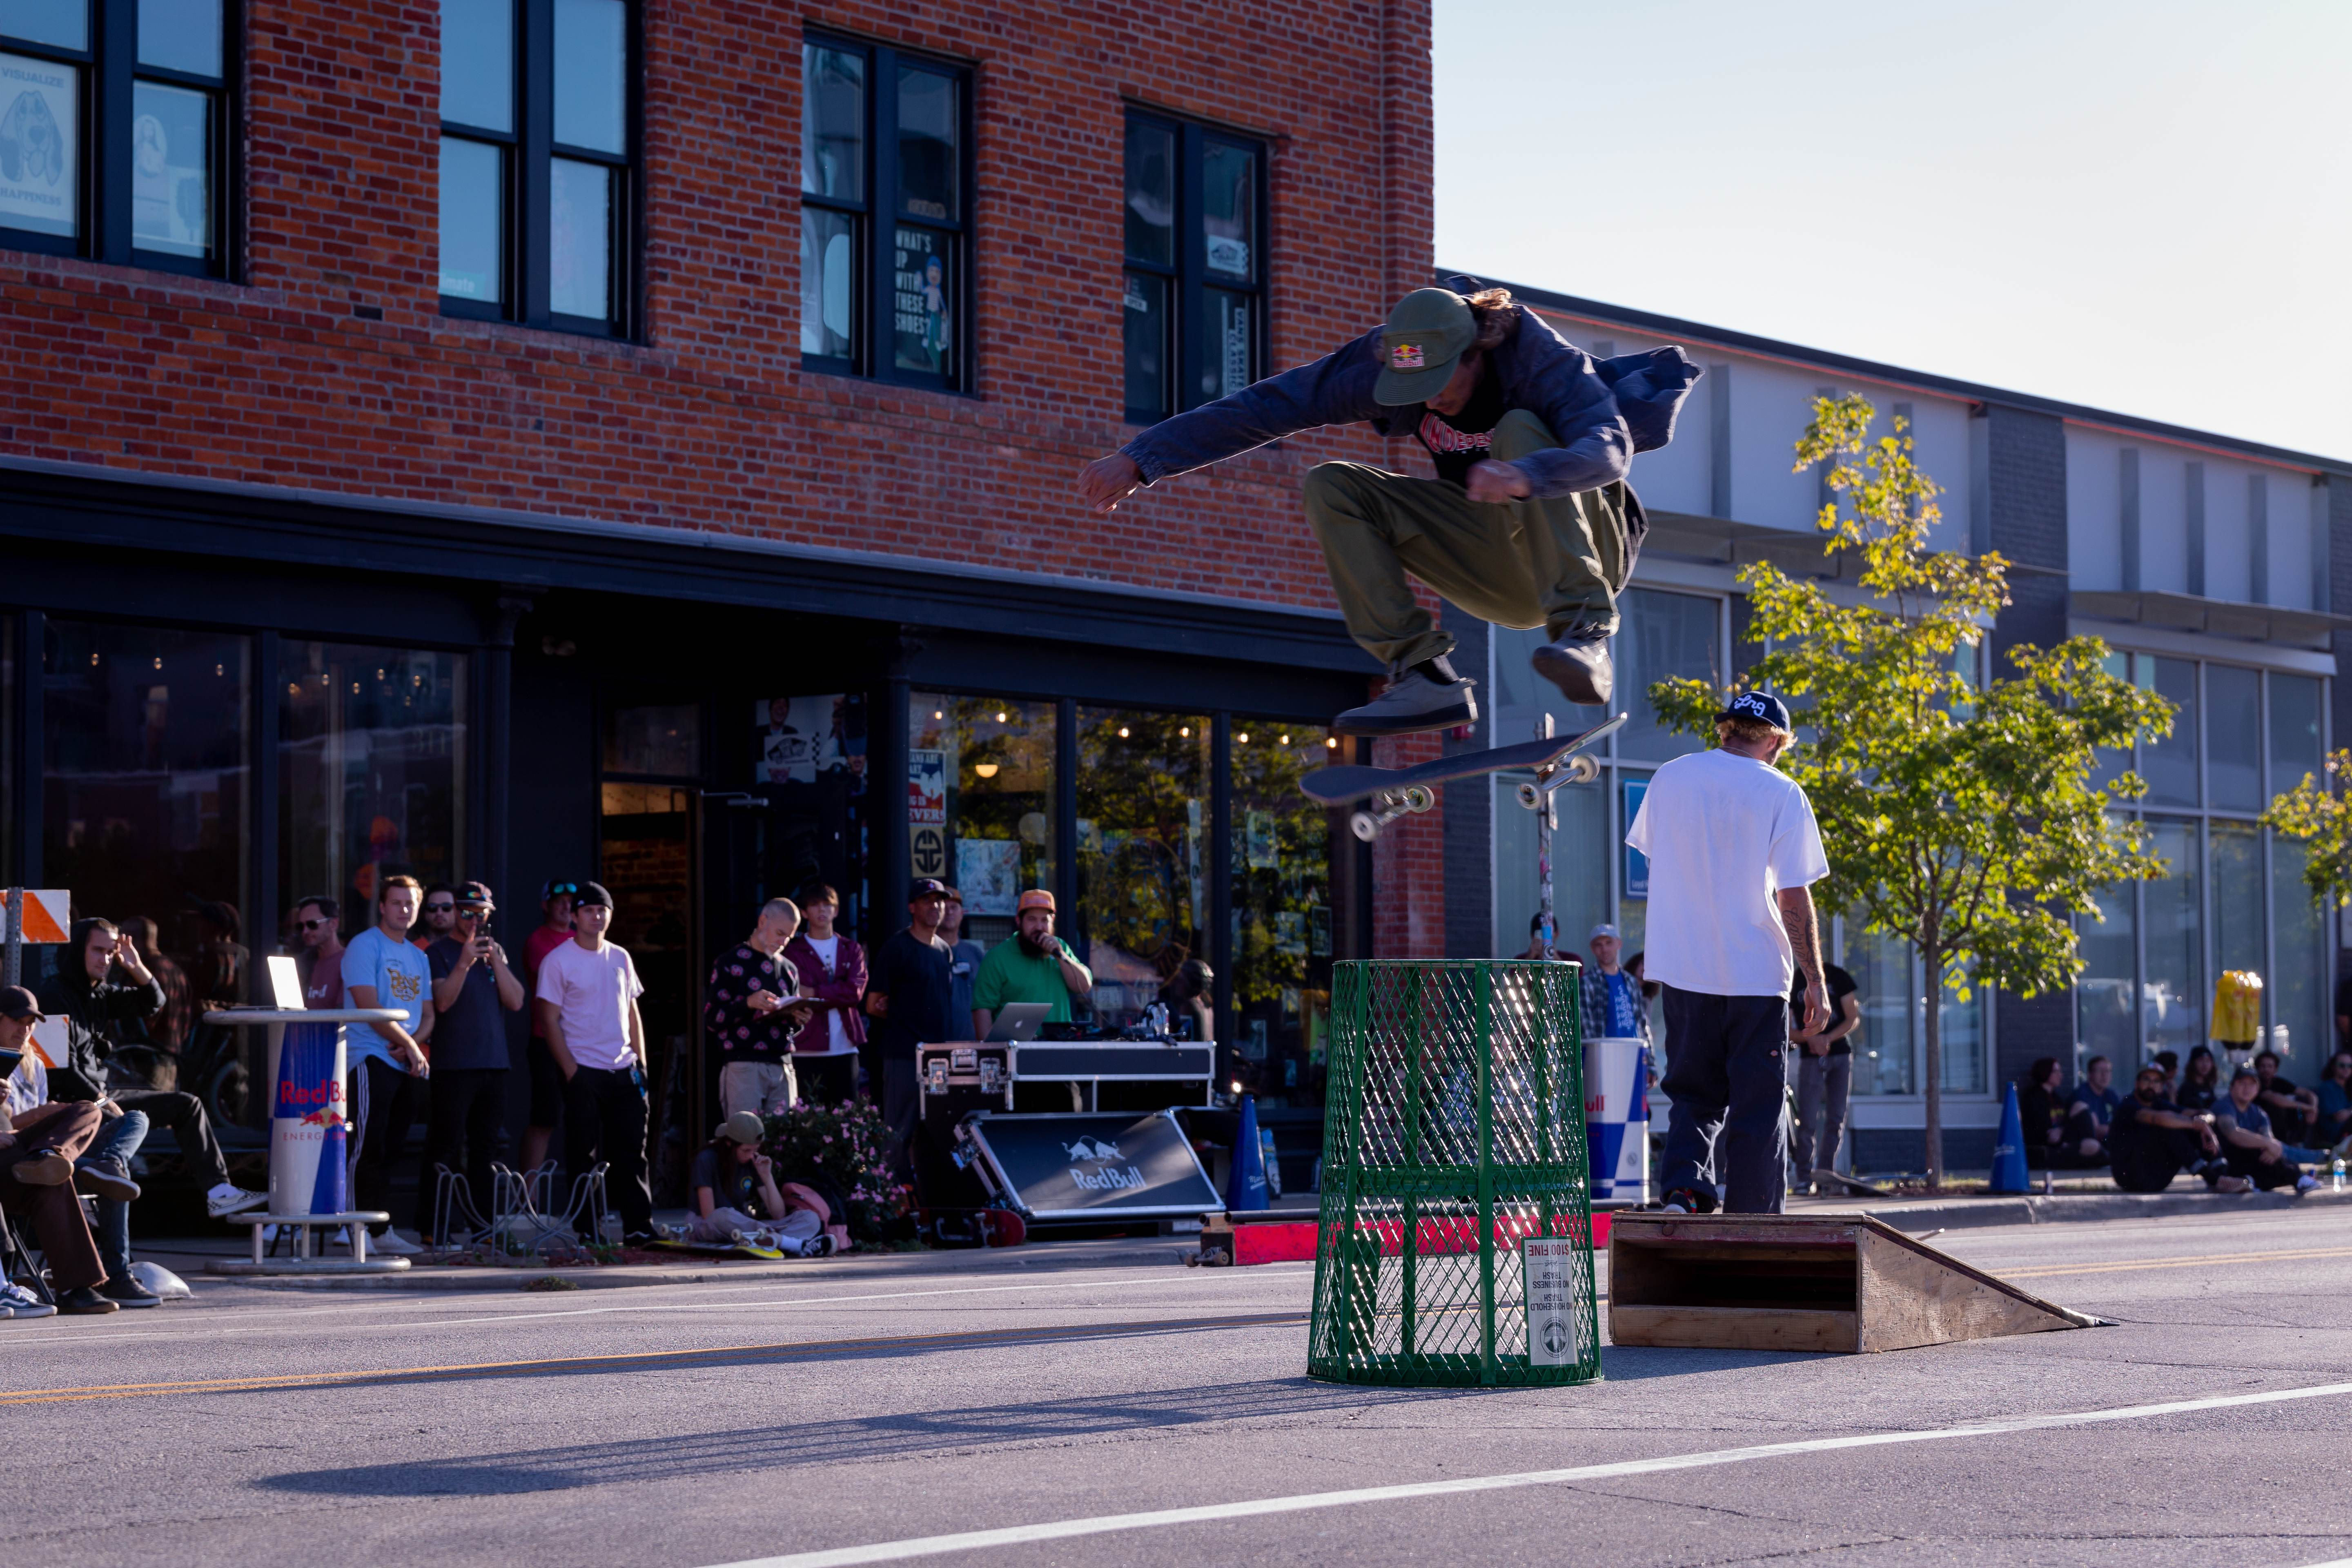 Des Moines Streetstyle Open 2021 - Frontside Flip the Can